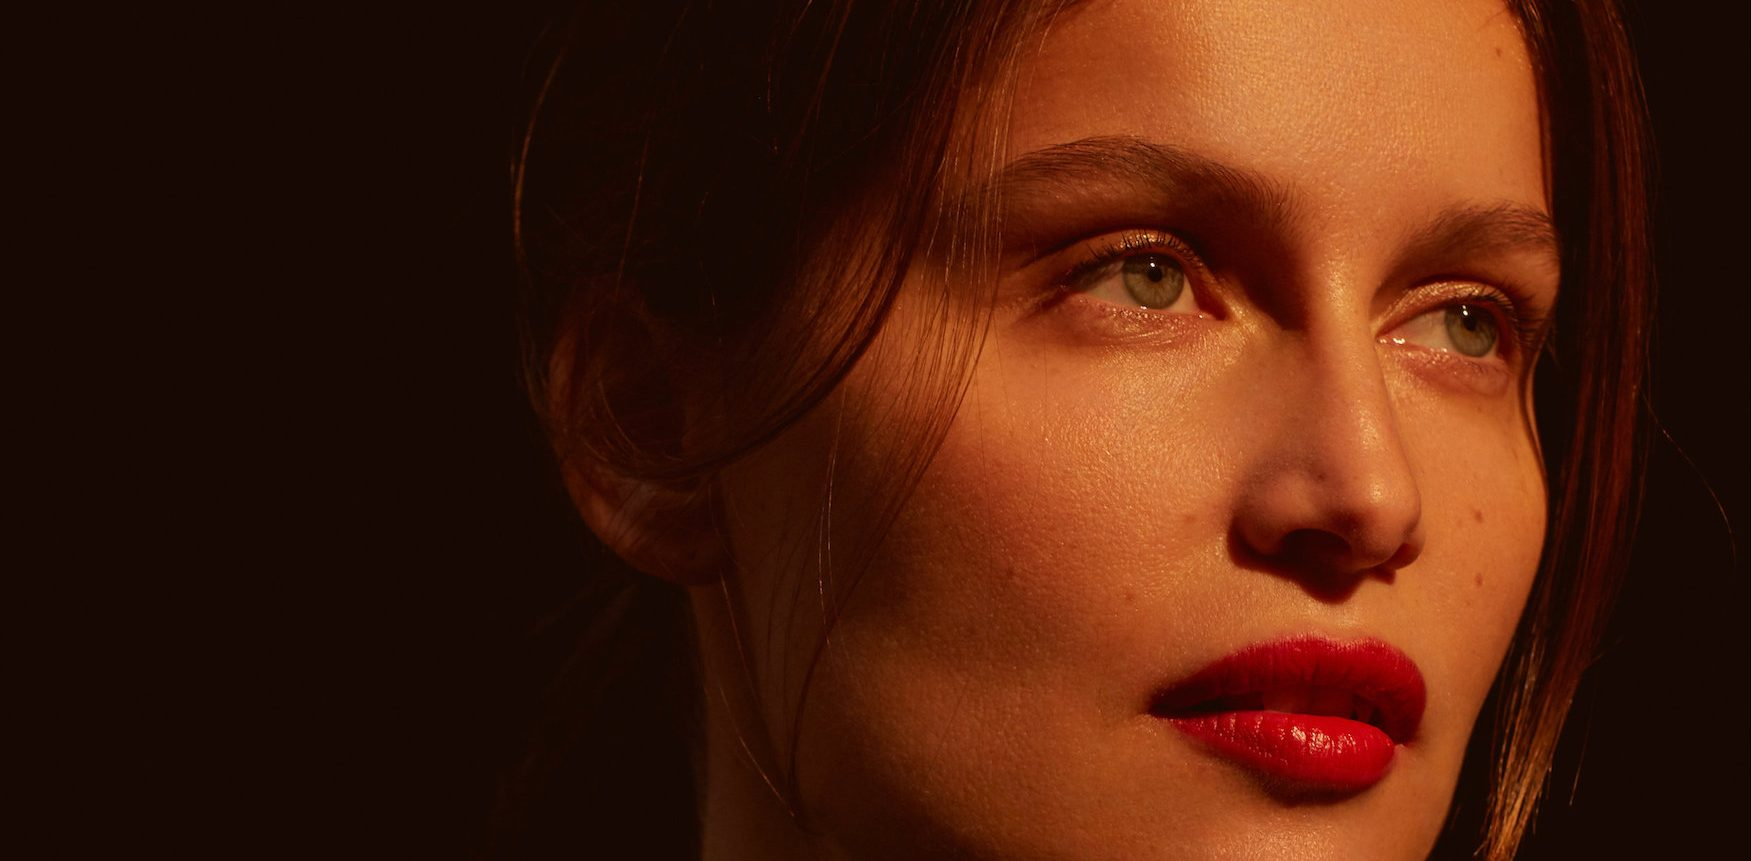 Laetitia Casta photographed by Arseny Jabiev for Elle Russia, February 2018